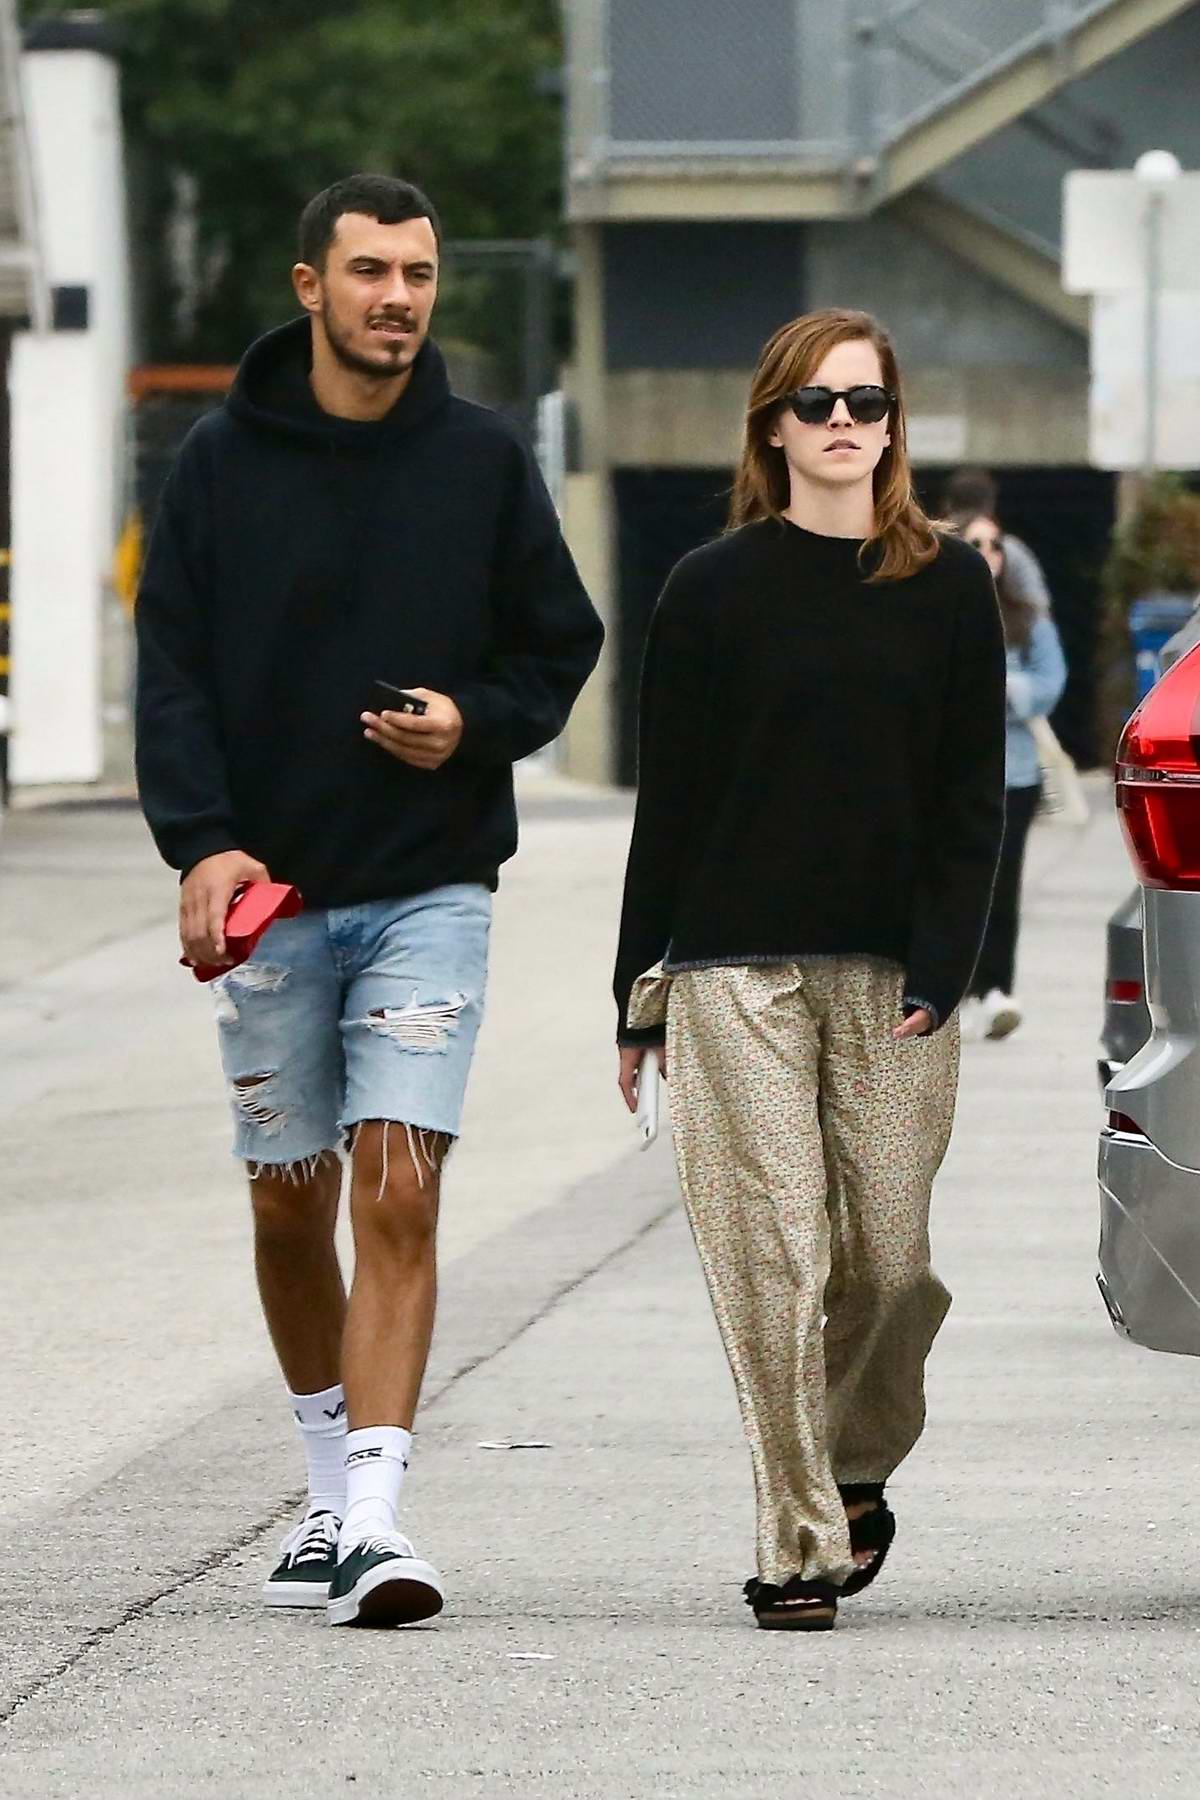 Emma Watson steps out for an afternoon walk with a male companion on Abbot Kinney Boulevard in Venice, California